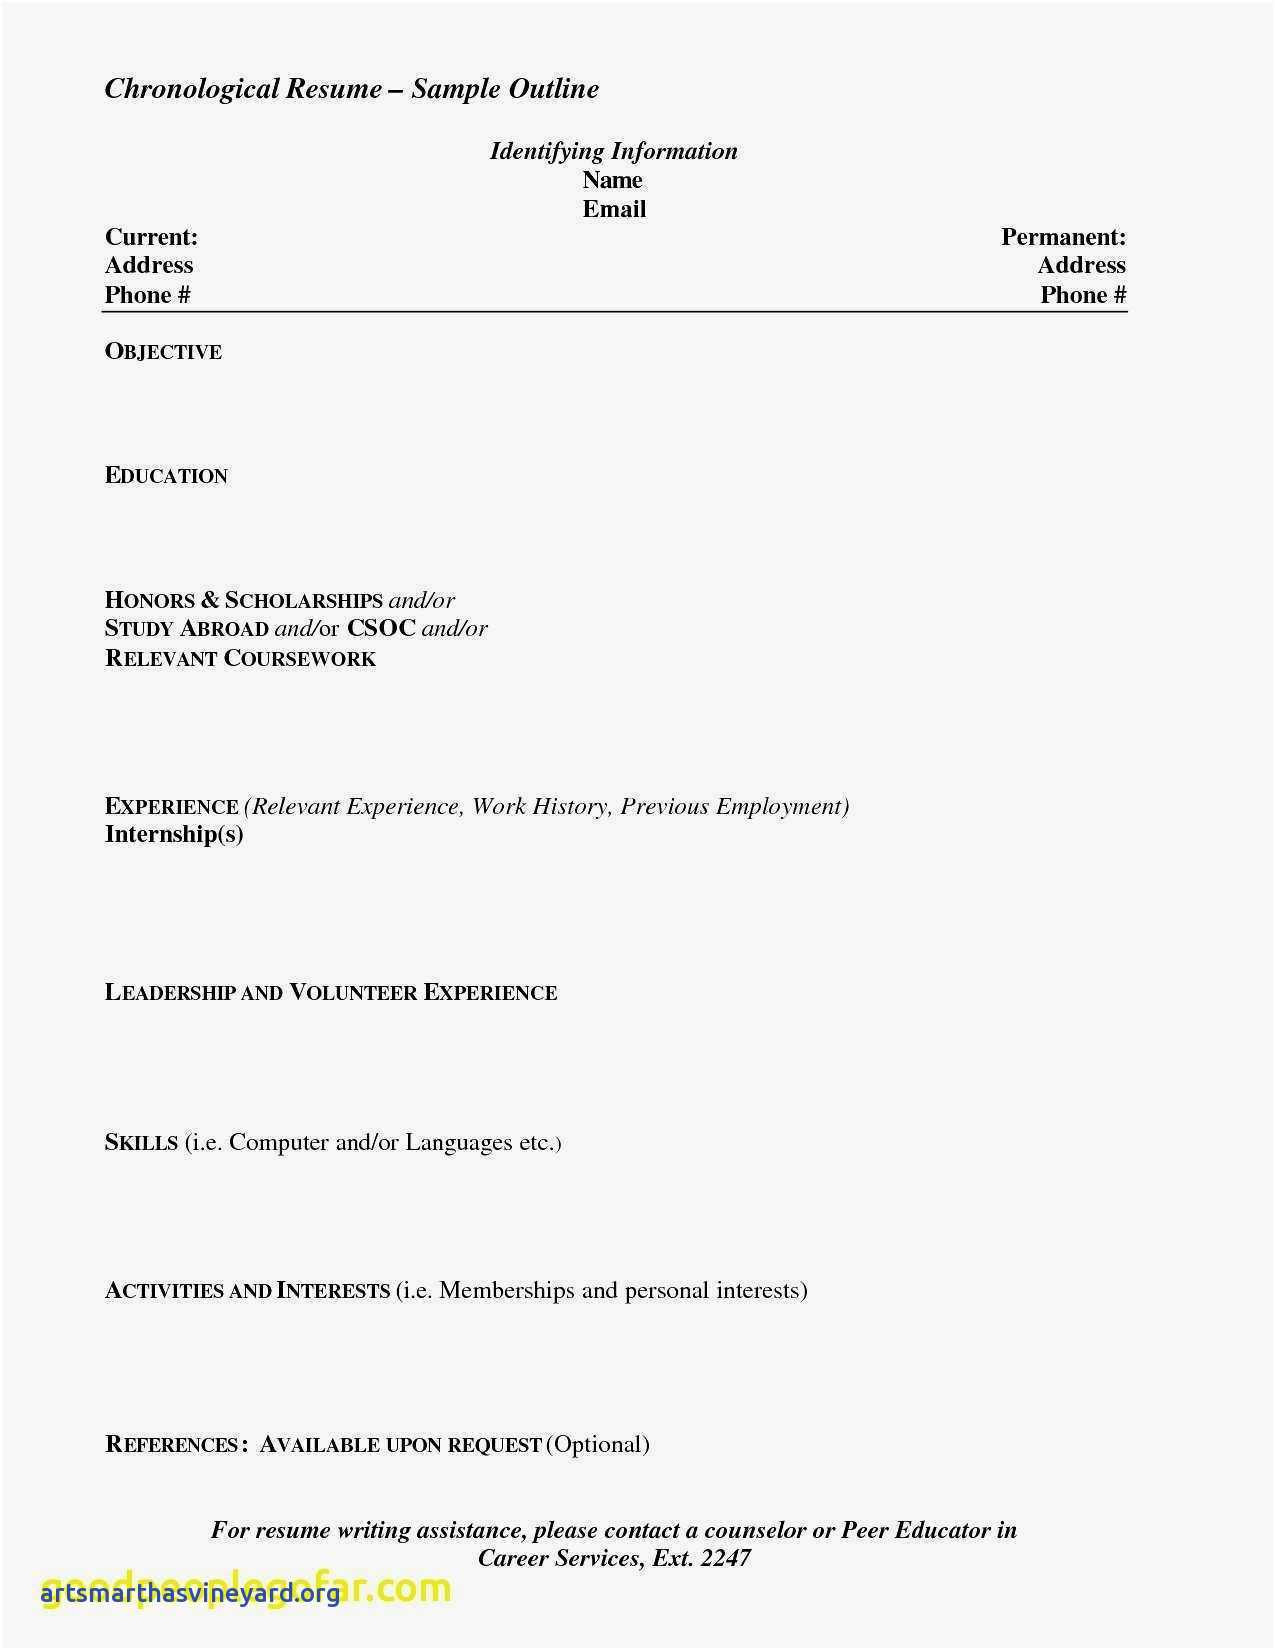 Emailable Resume Templates - Resume Templates High School Students No Experience Simple Unique